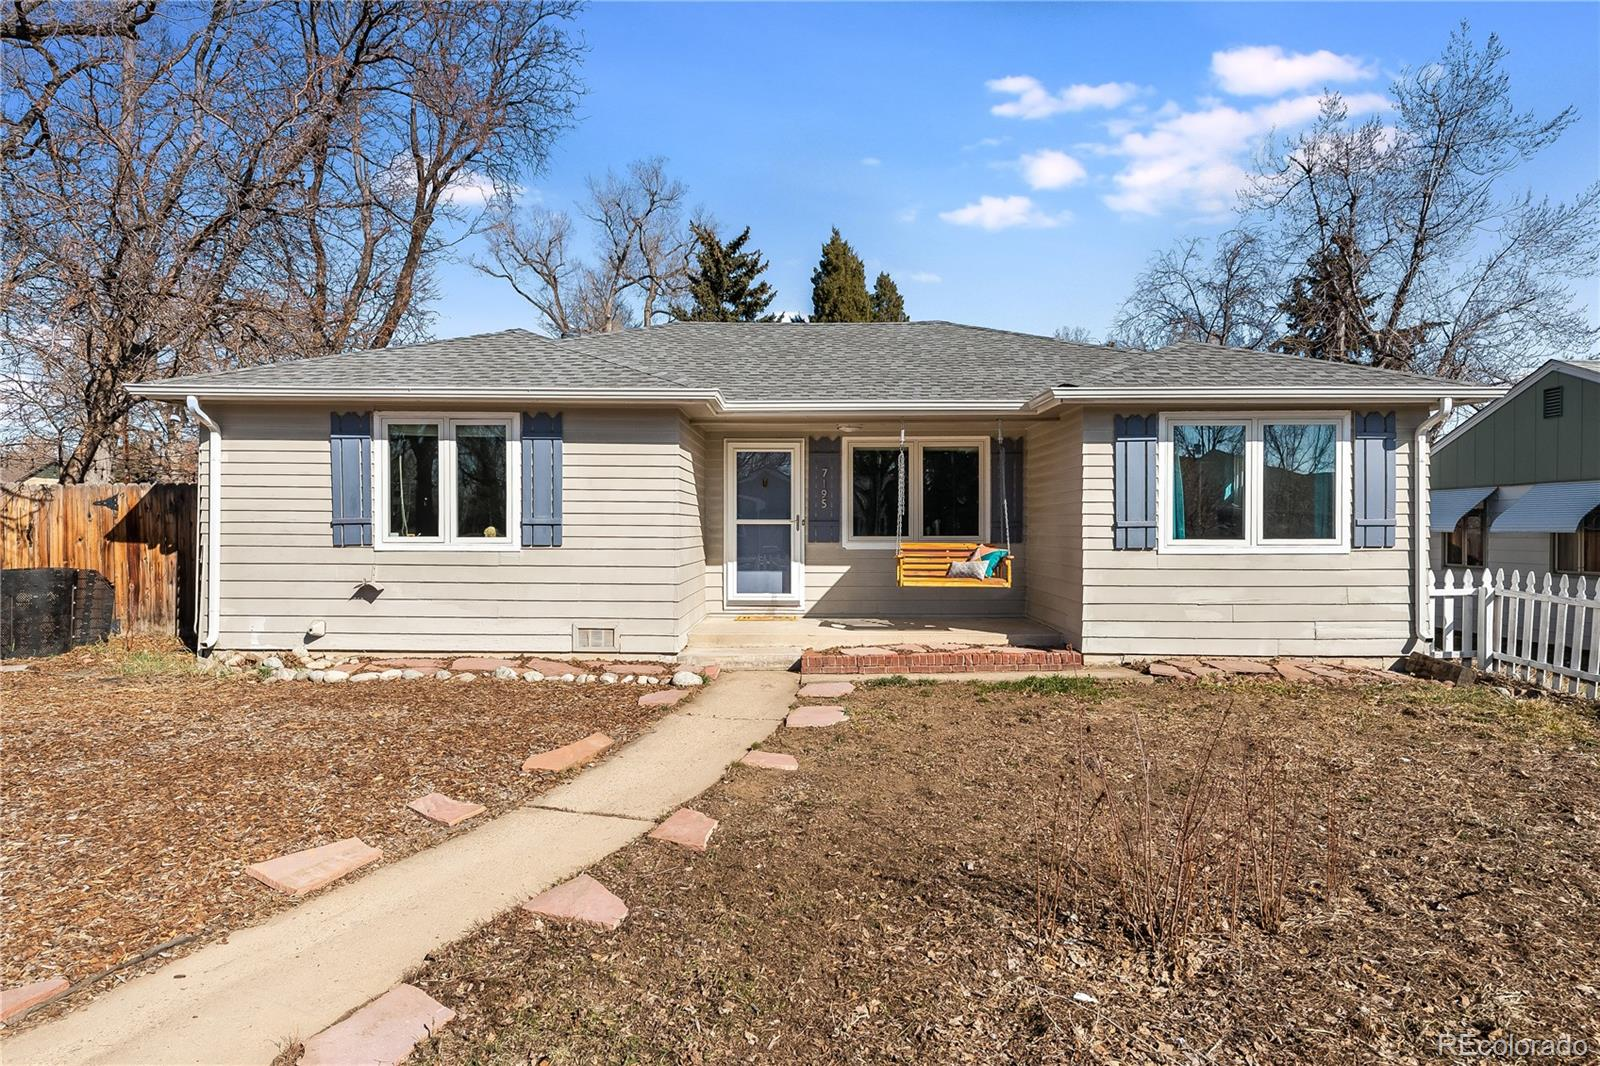 MLS# 2050120 - 2 - 7195 W 24th Place, Lakewood, CO 80214